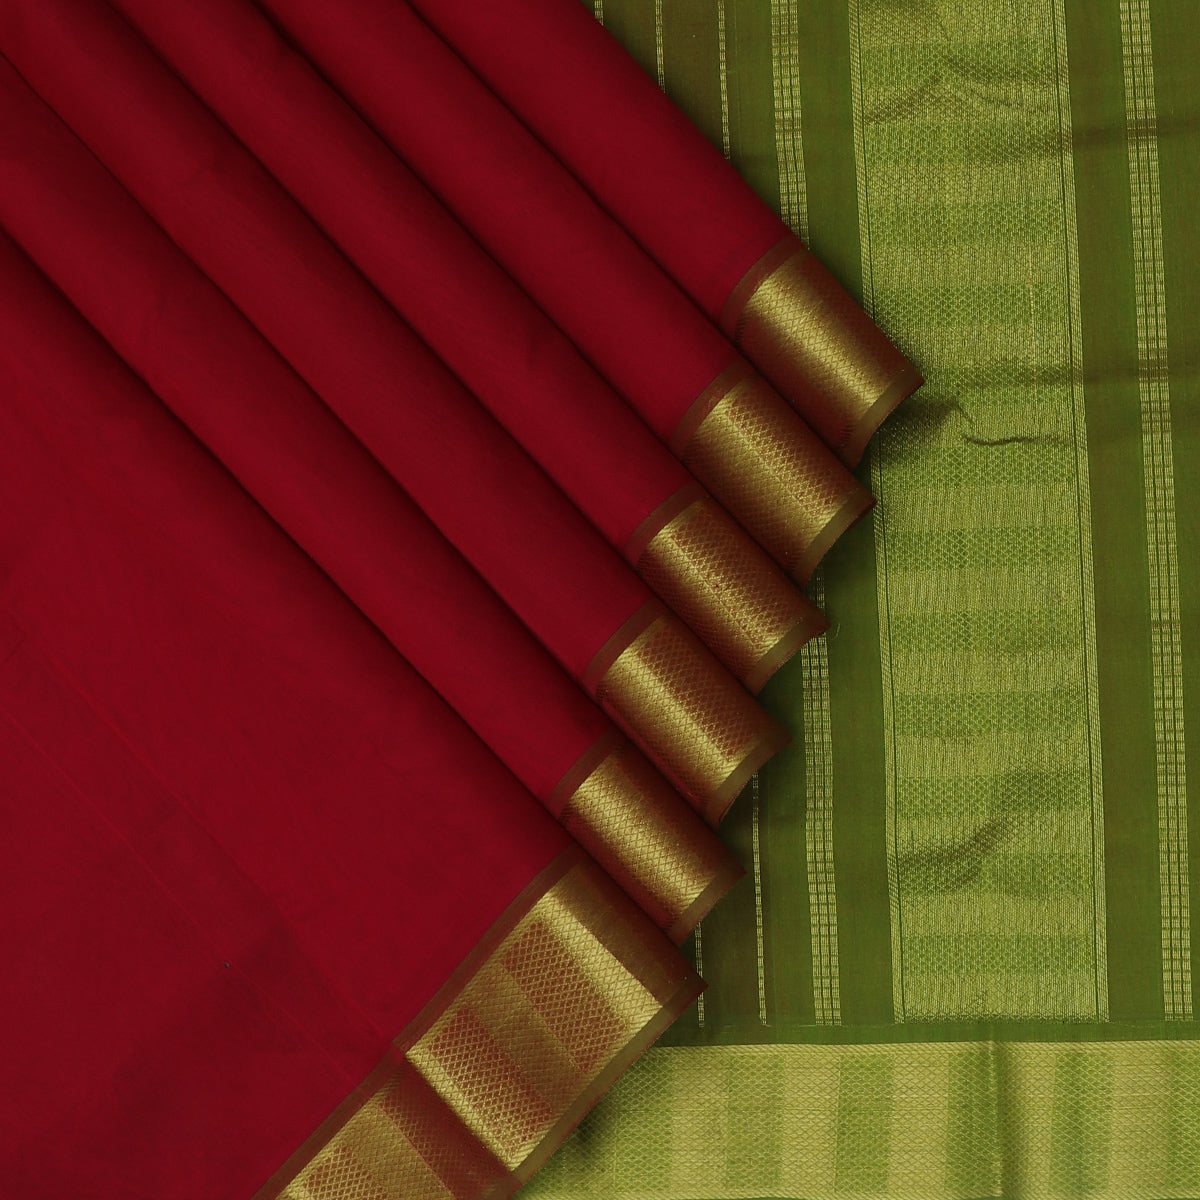 Silk Cotton Saree Red and Moss Green with zari border 9 yards